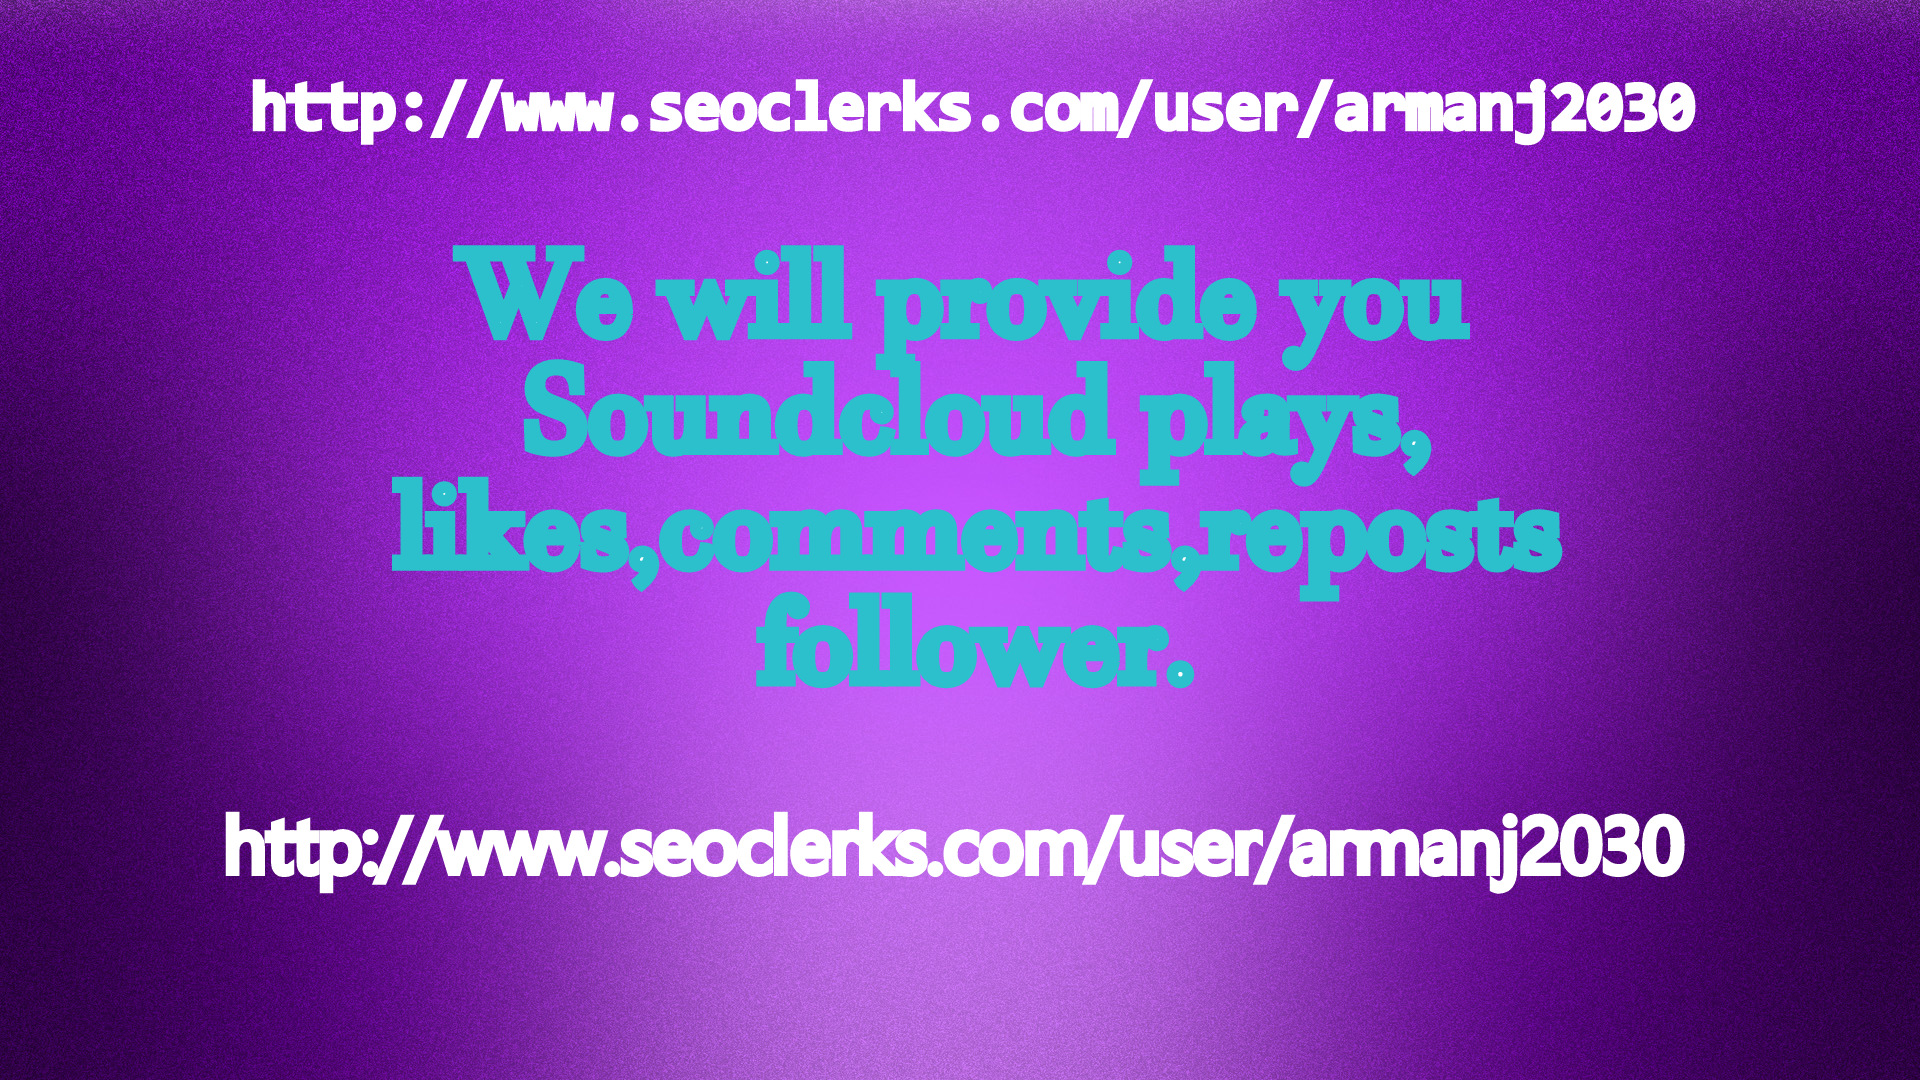 We will provide you 6k soundcloud plays 600 soundcloud USA likes + reposts  with 60 comments